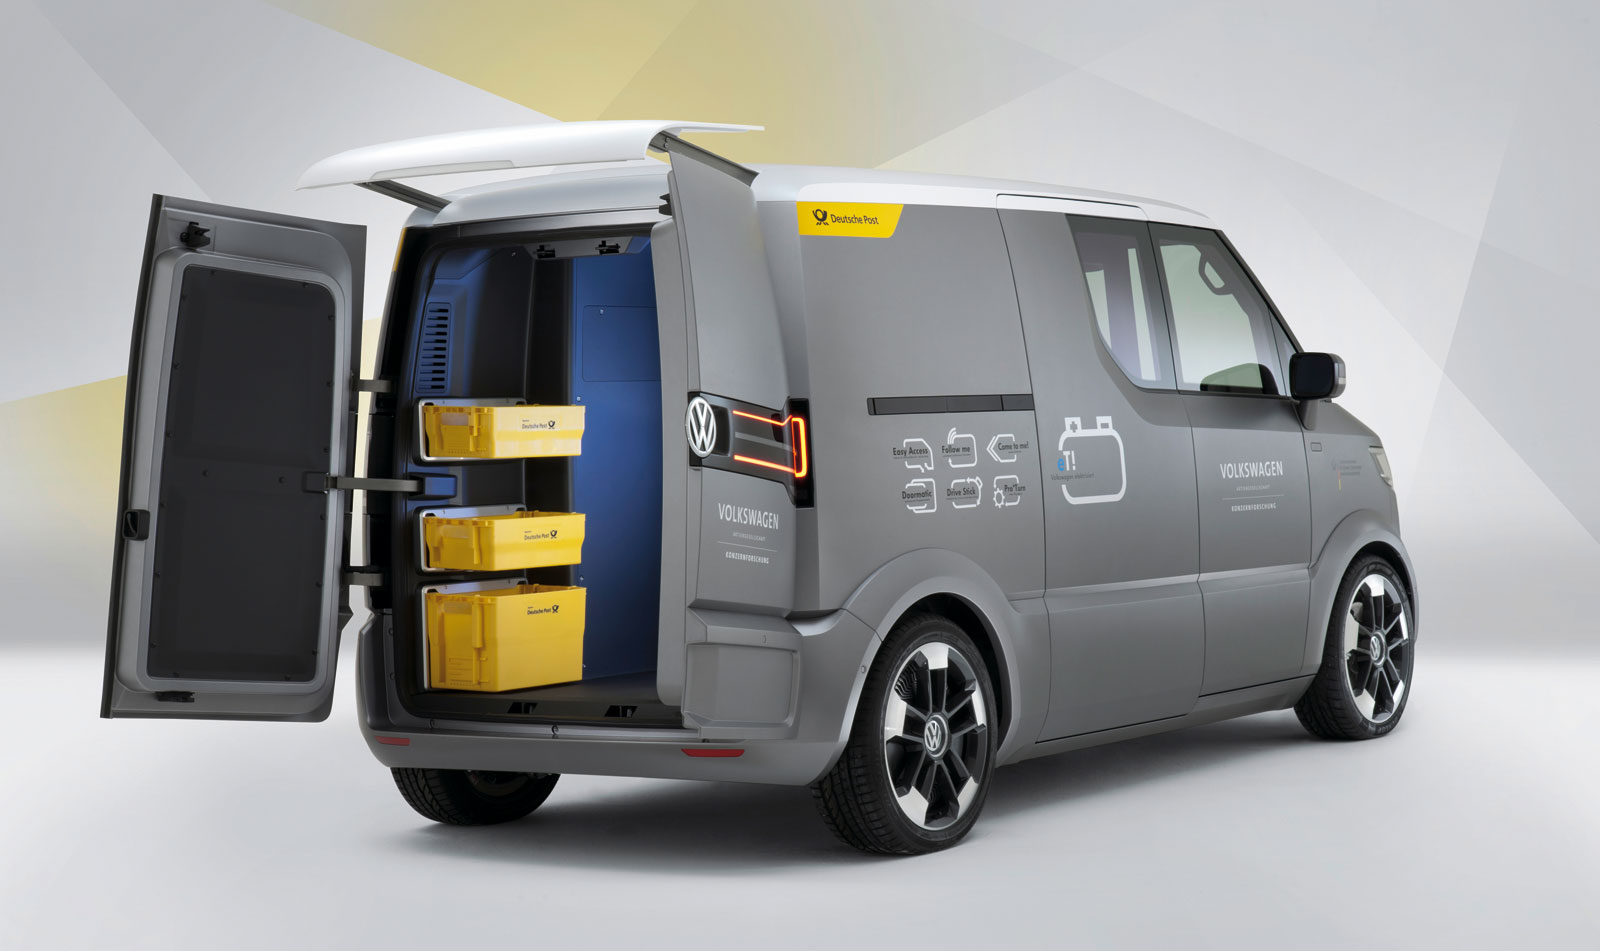 volkswagen et ev van concept electric vehicle news. Black Bedroom Furniture Sets. Home Design Ideas